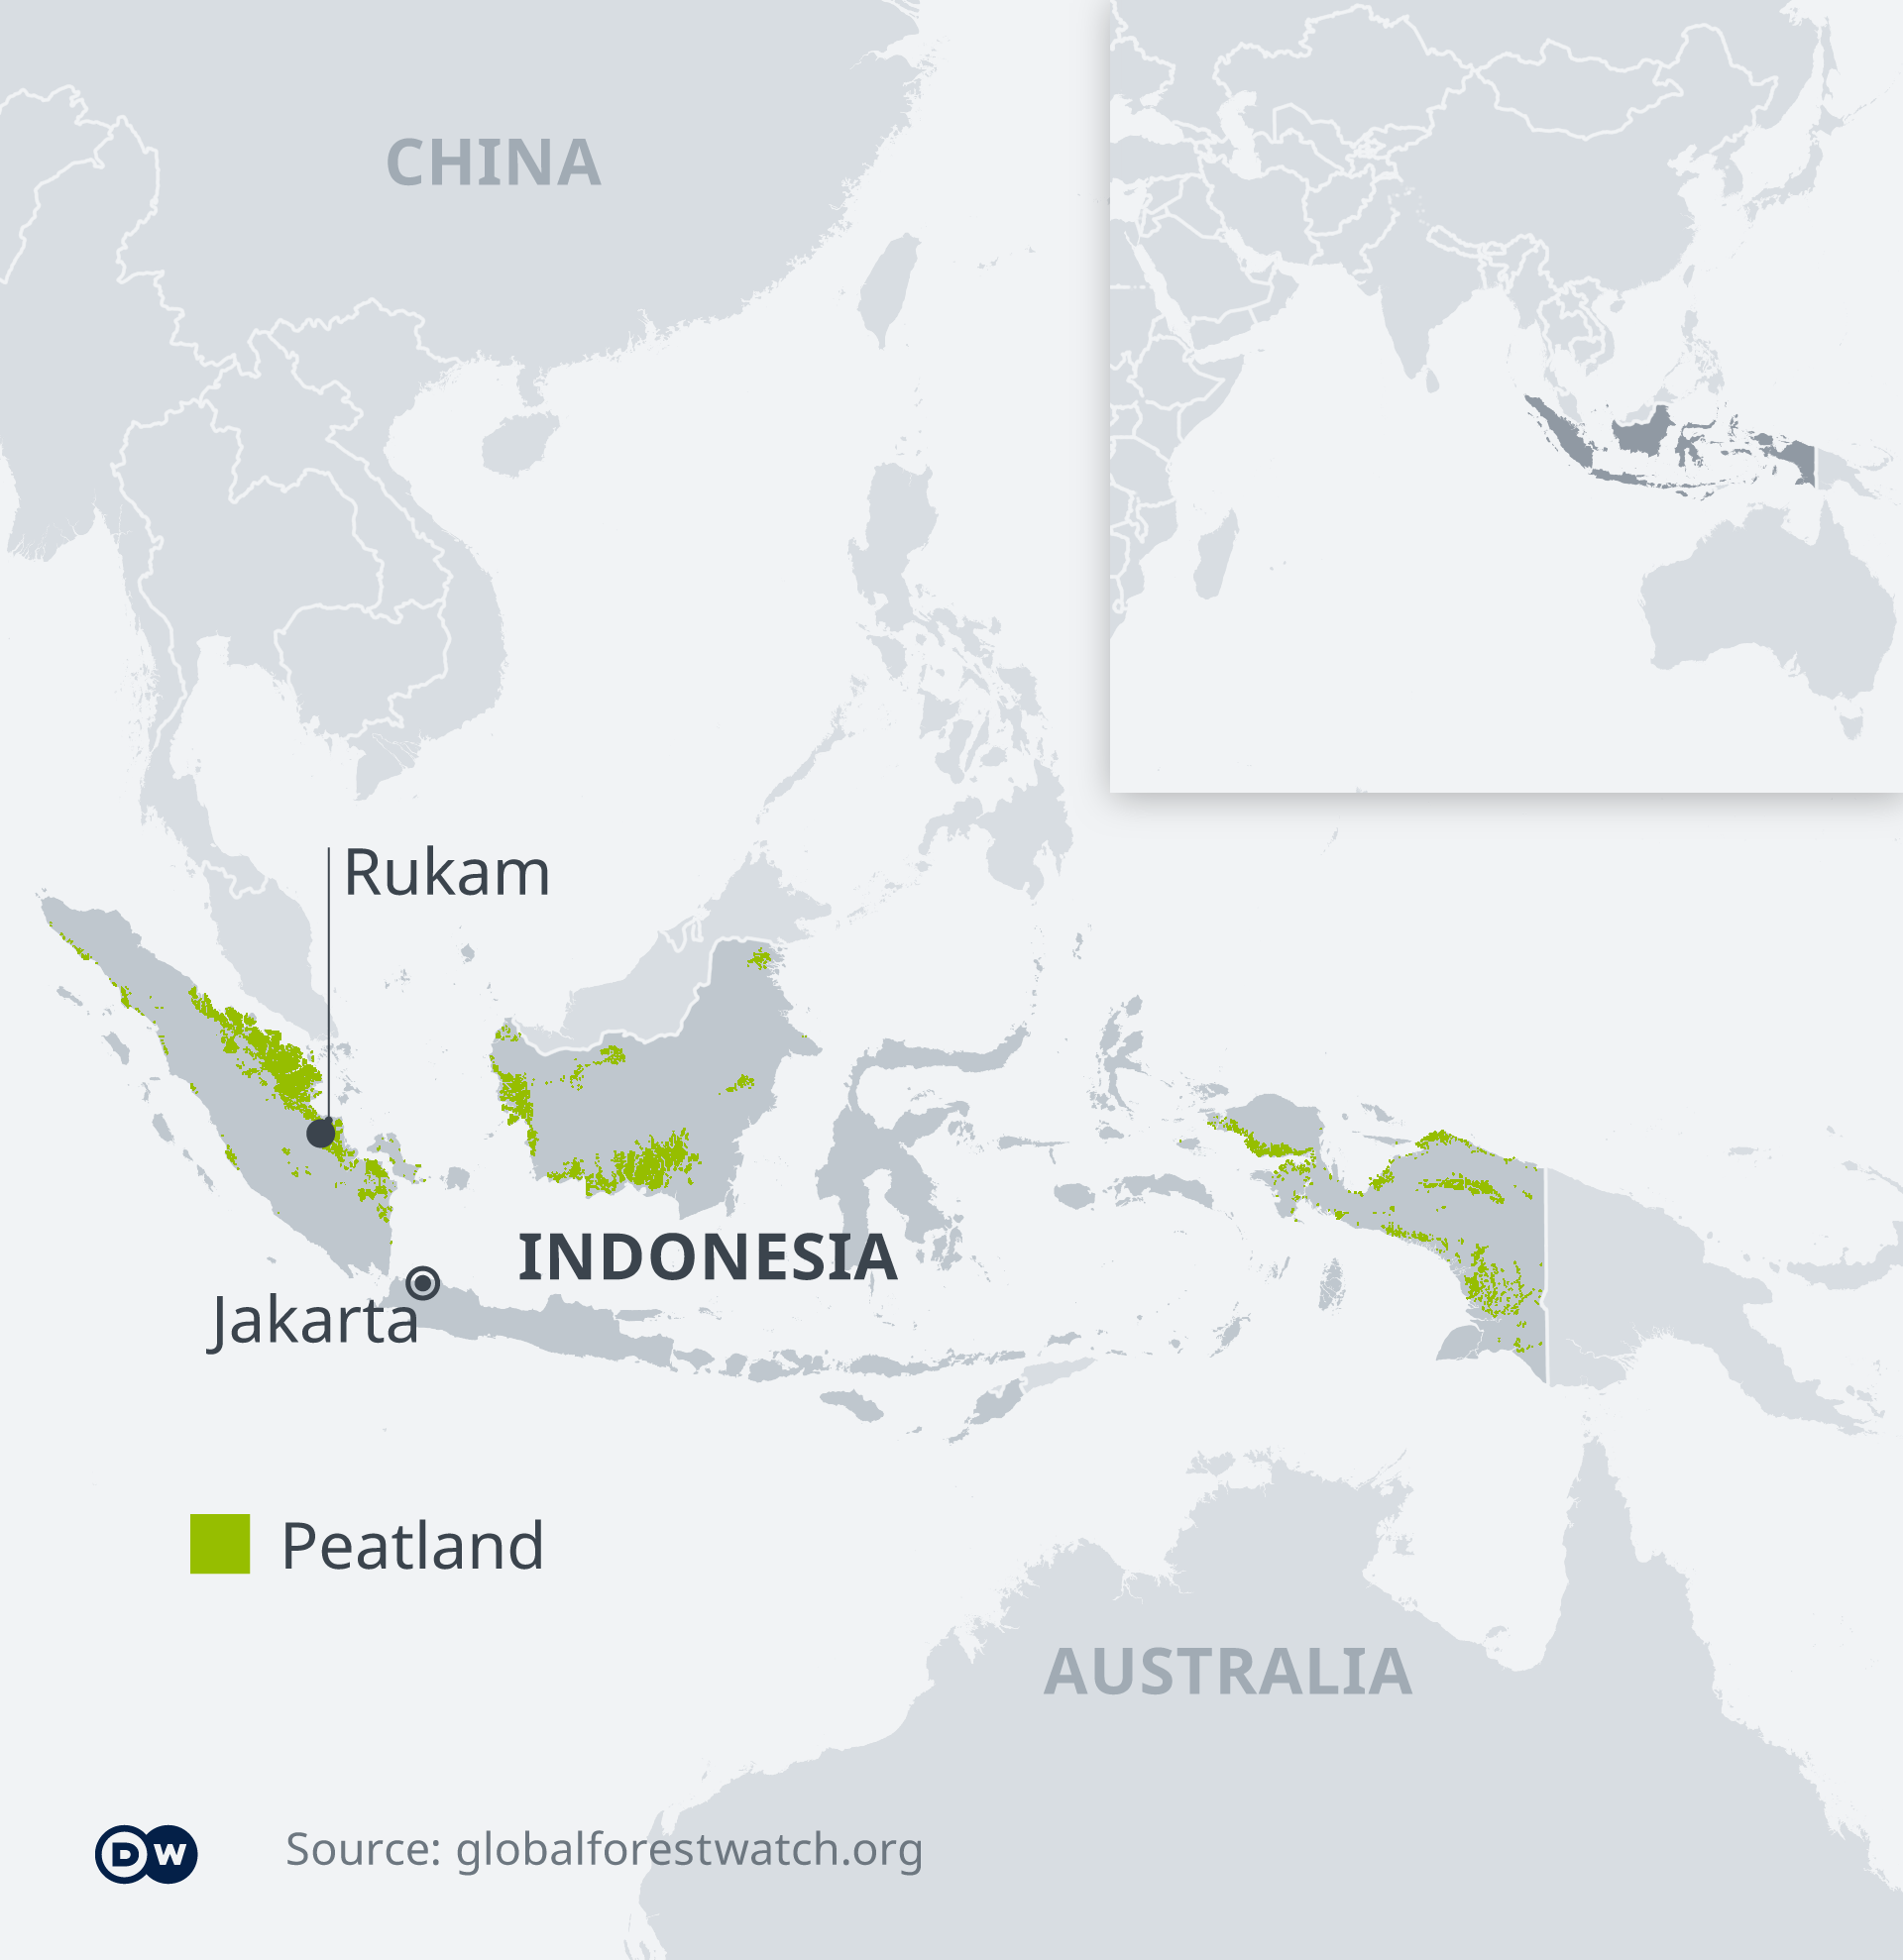 Map shows peatland coverage in Indonesia and location of Rukam village.